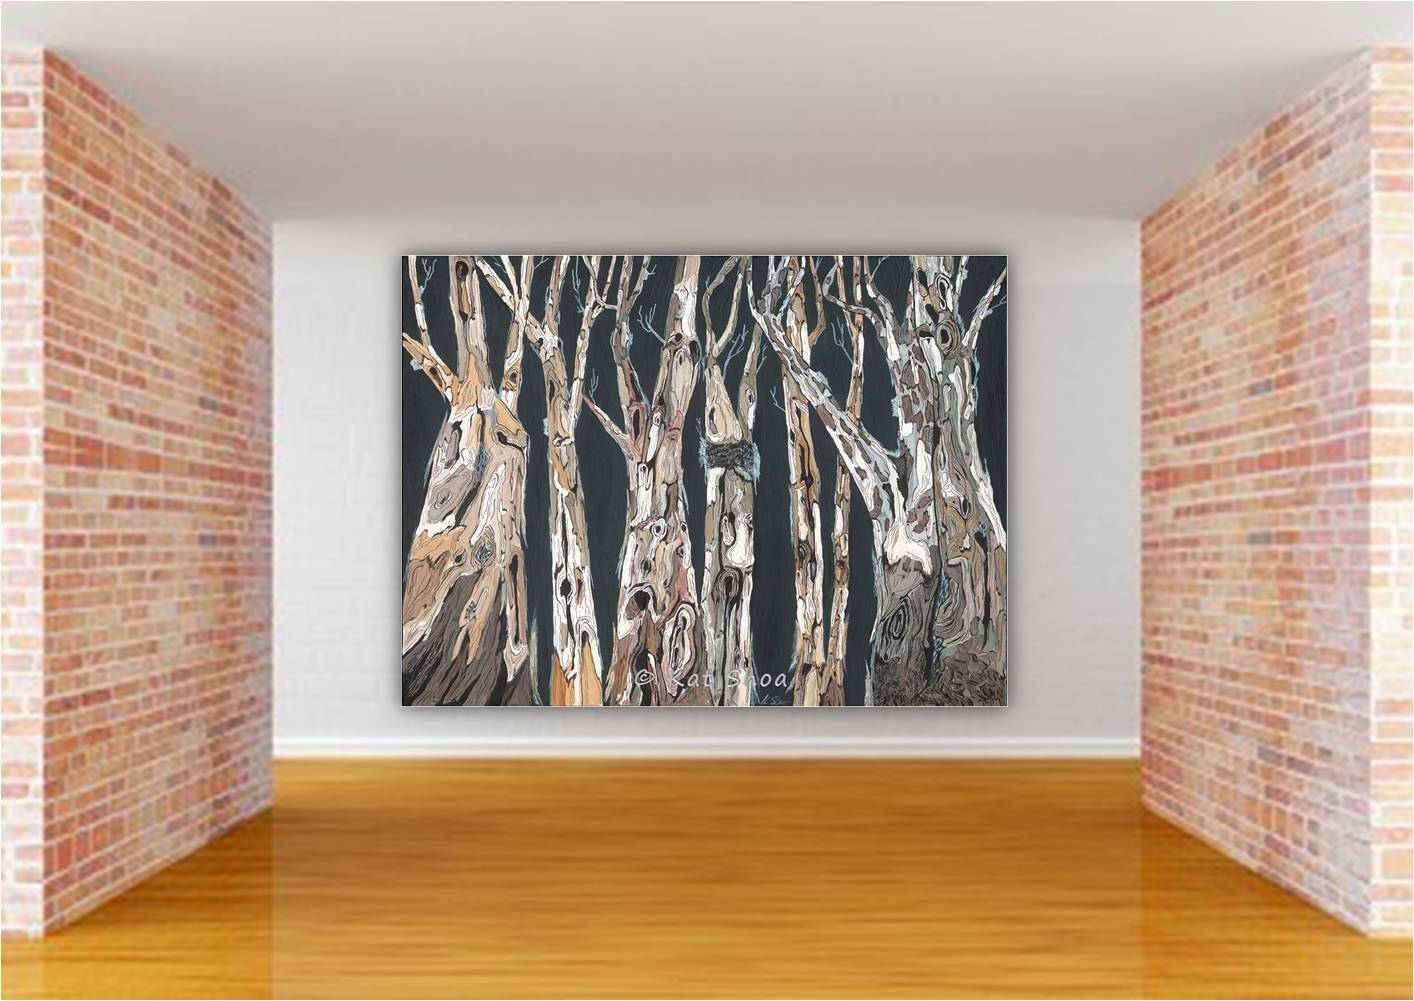 Long Wall Art Extra Large Canvas Print Gicleetree White With Regard To Latest Extra Large Wall Art Prints (View 2 of 20)